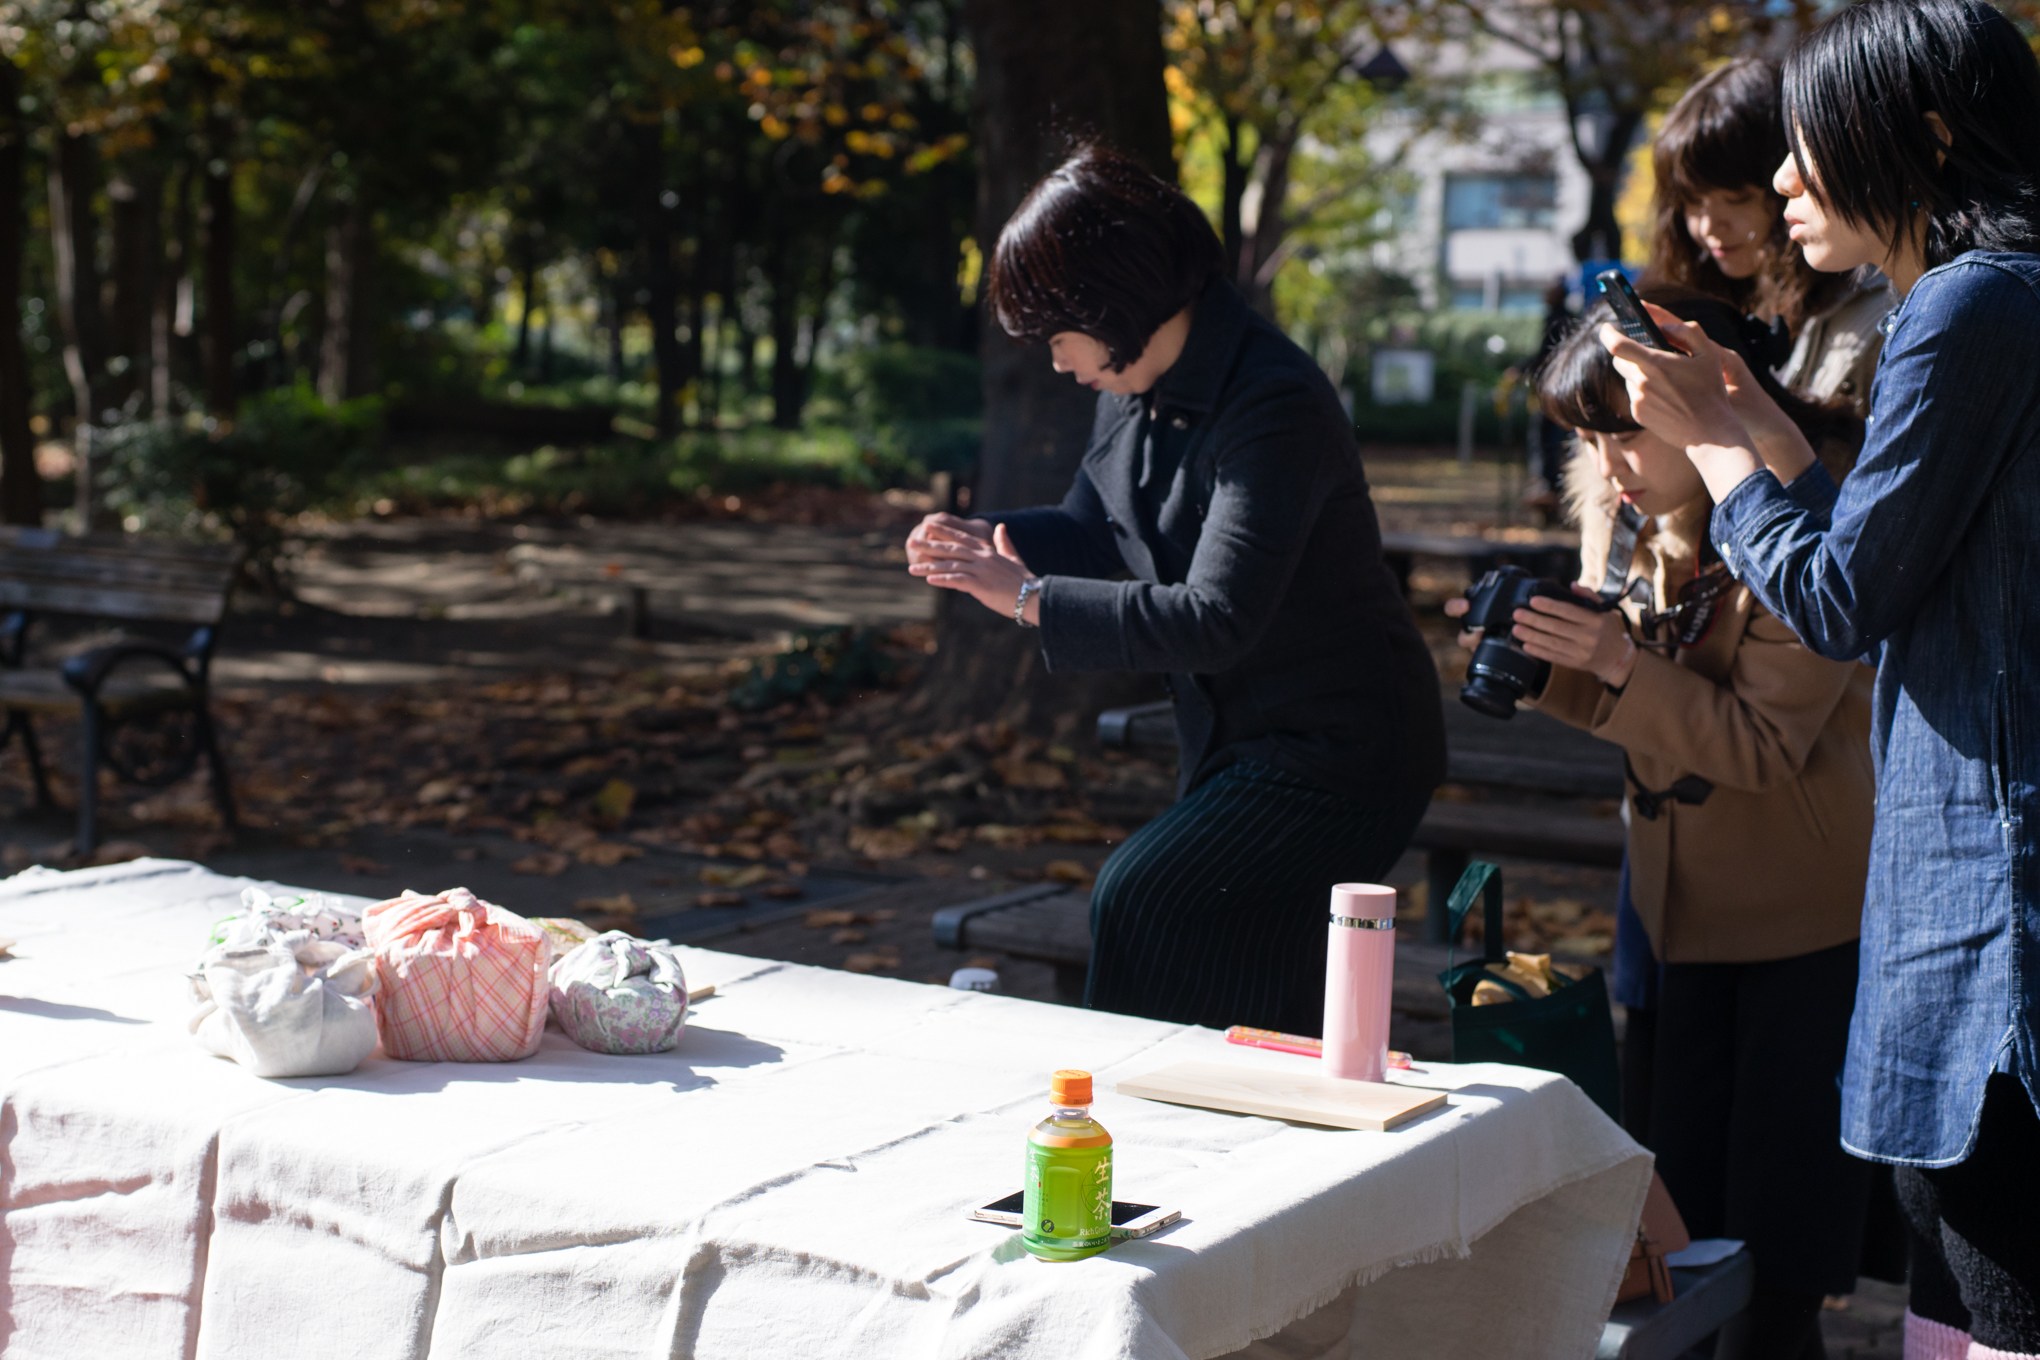 magewappa-picnic-in-tokyo-info-2016-42